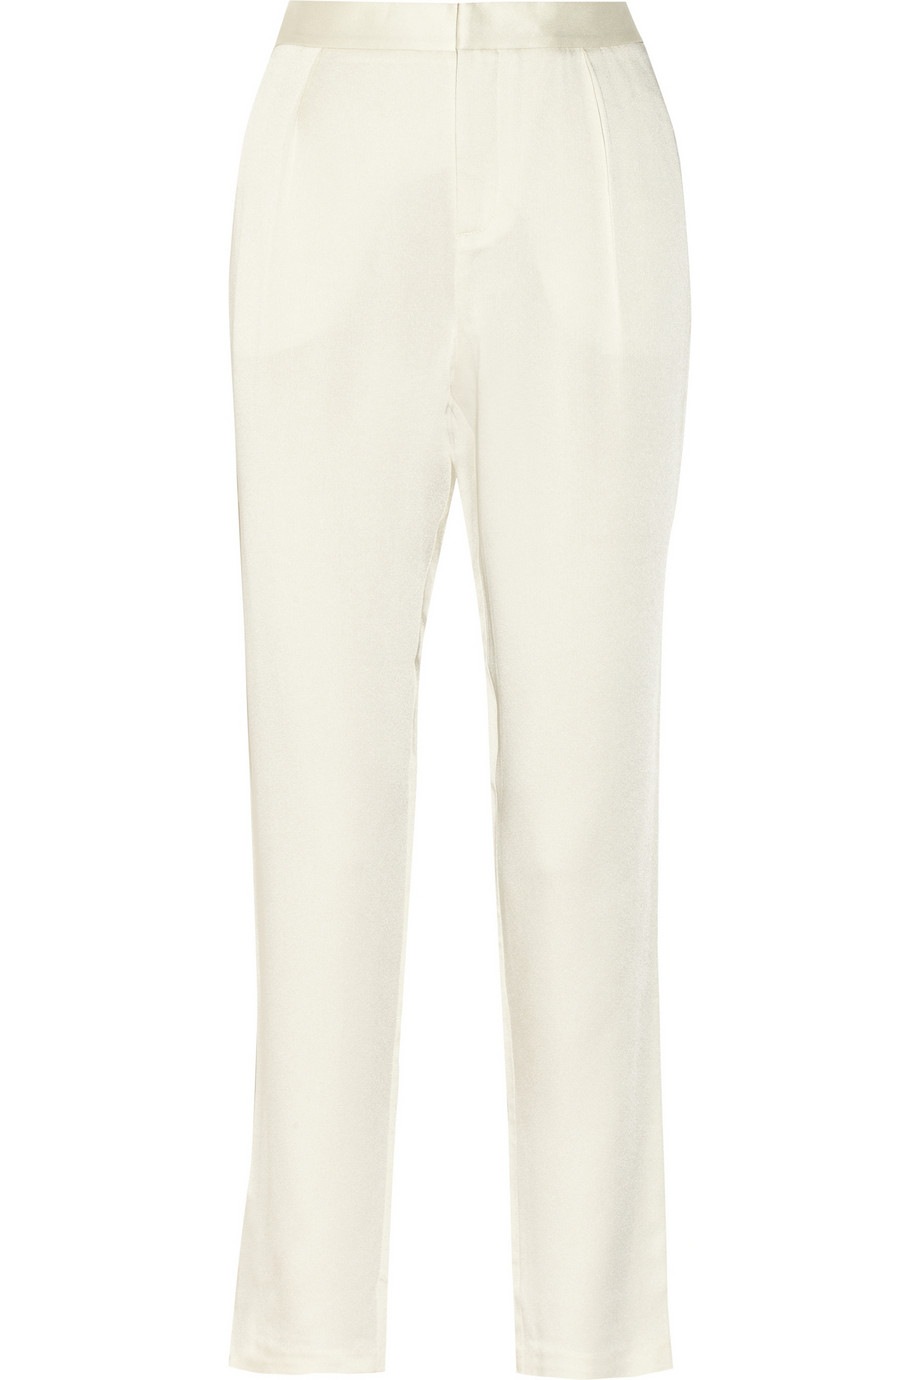 Tapered crepe-satin pants | T by Alexander Wang | THE OUTNET